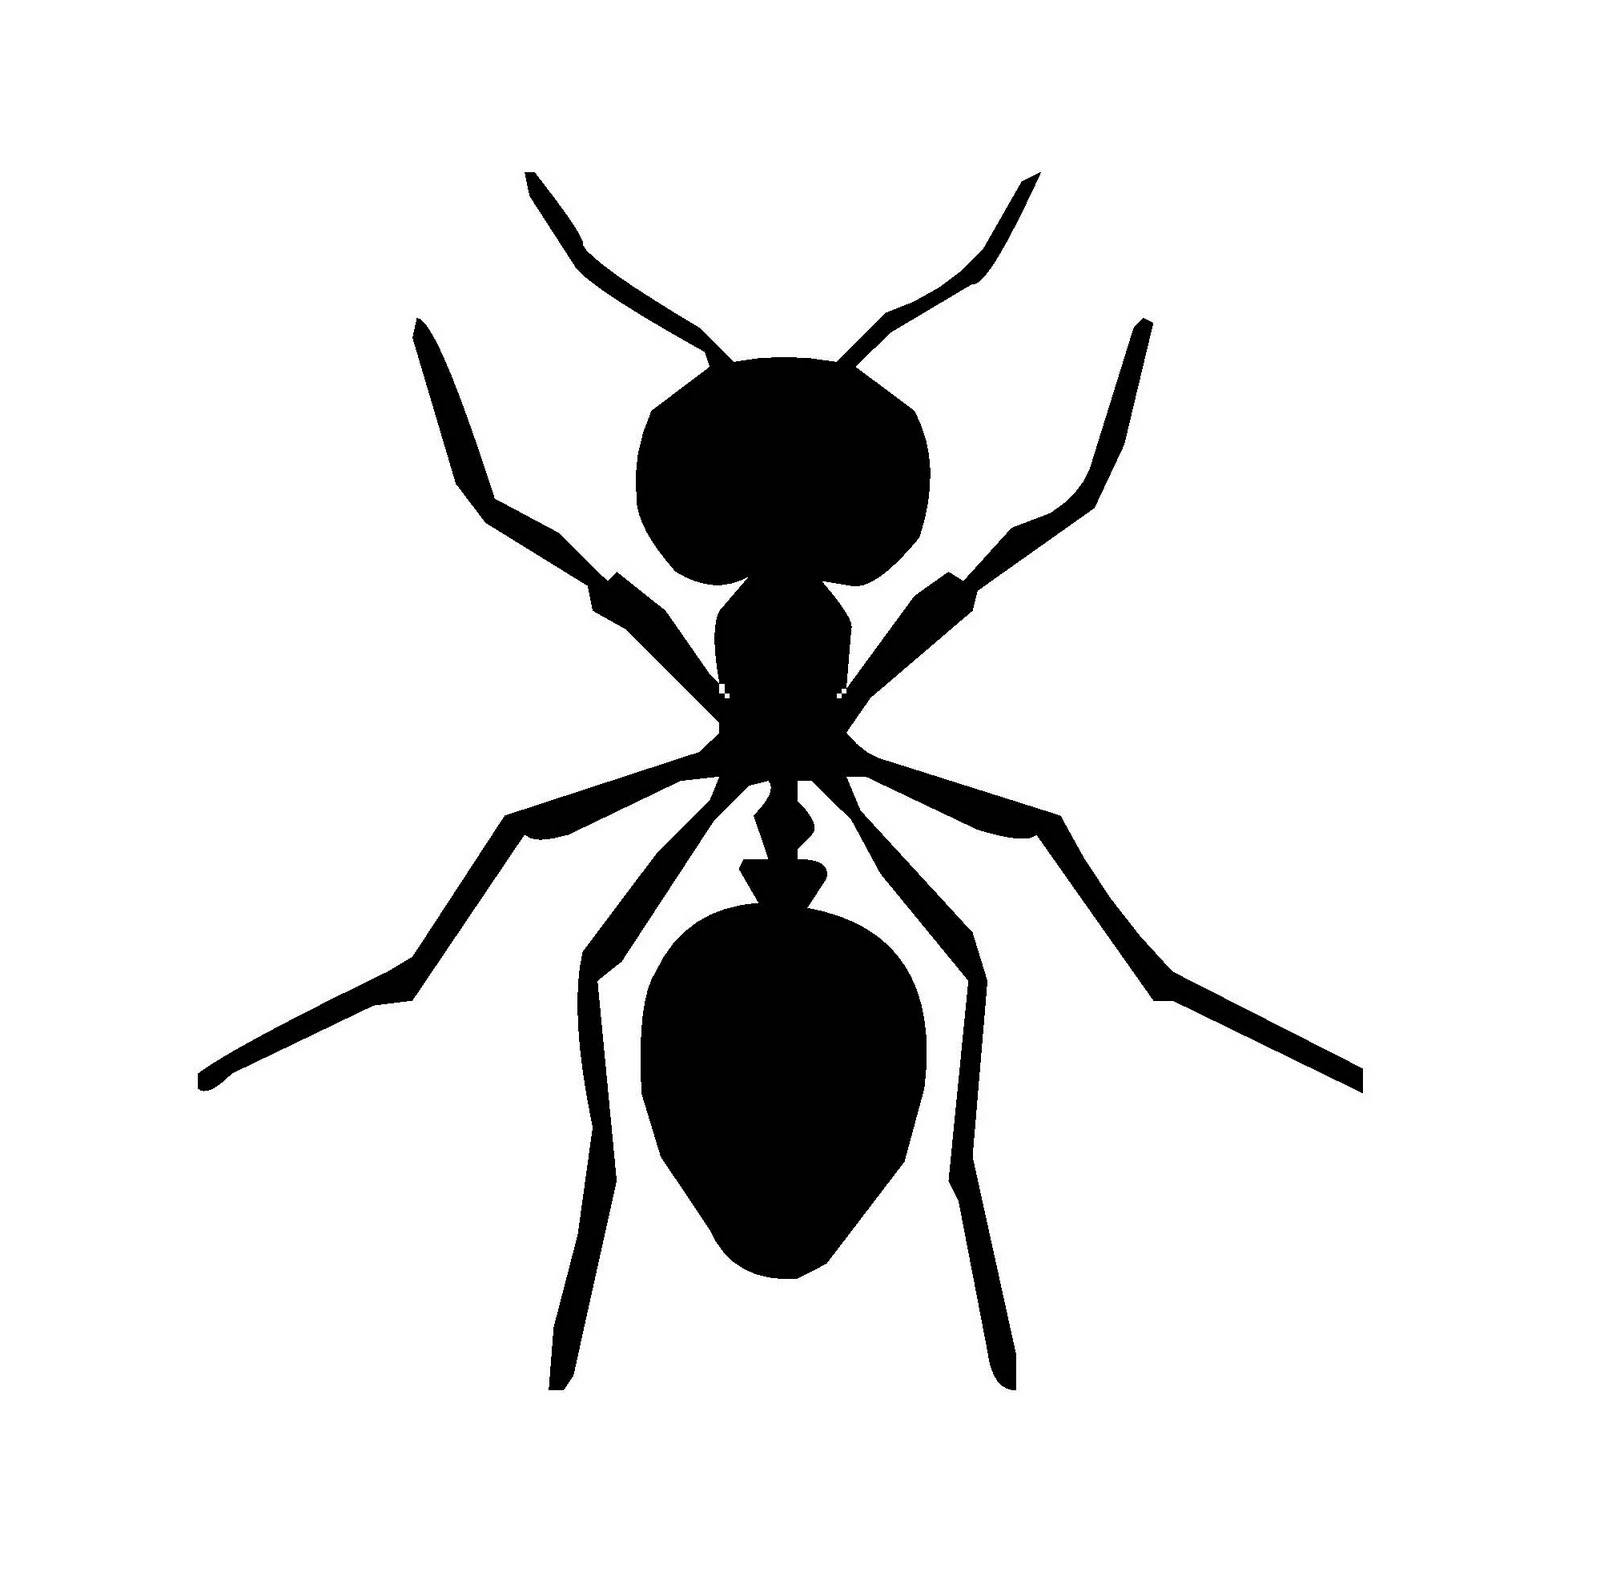 free ant clipart black and white - photo #37